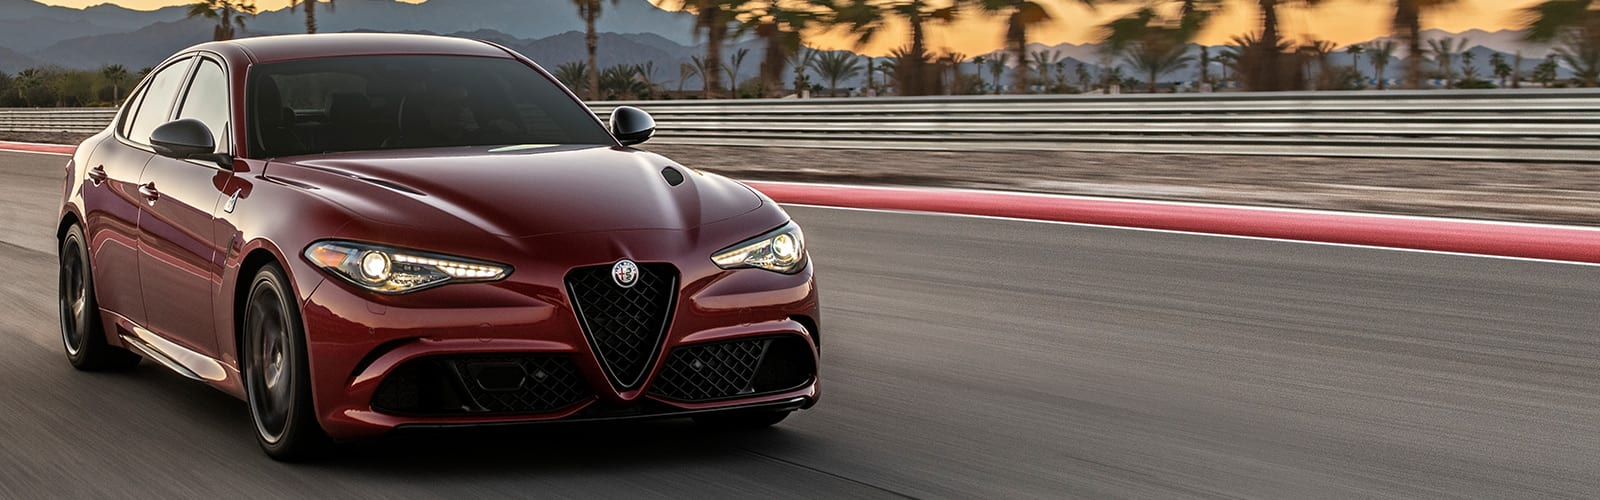 A 2020 Alfa Romeo Giulia Quadrifoglio being driven on a track at sunset.